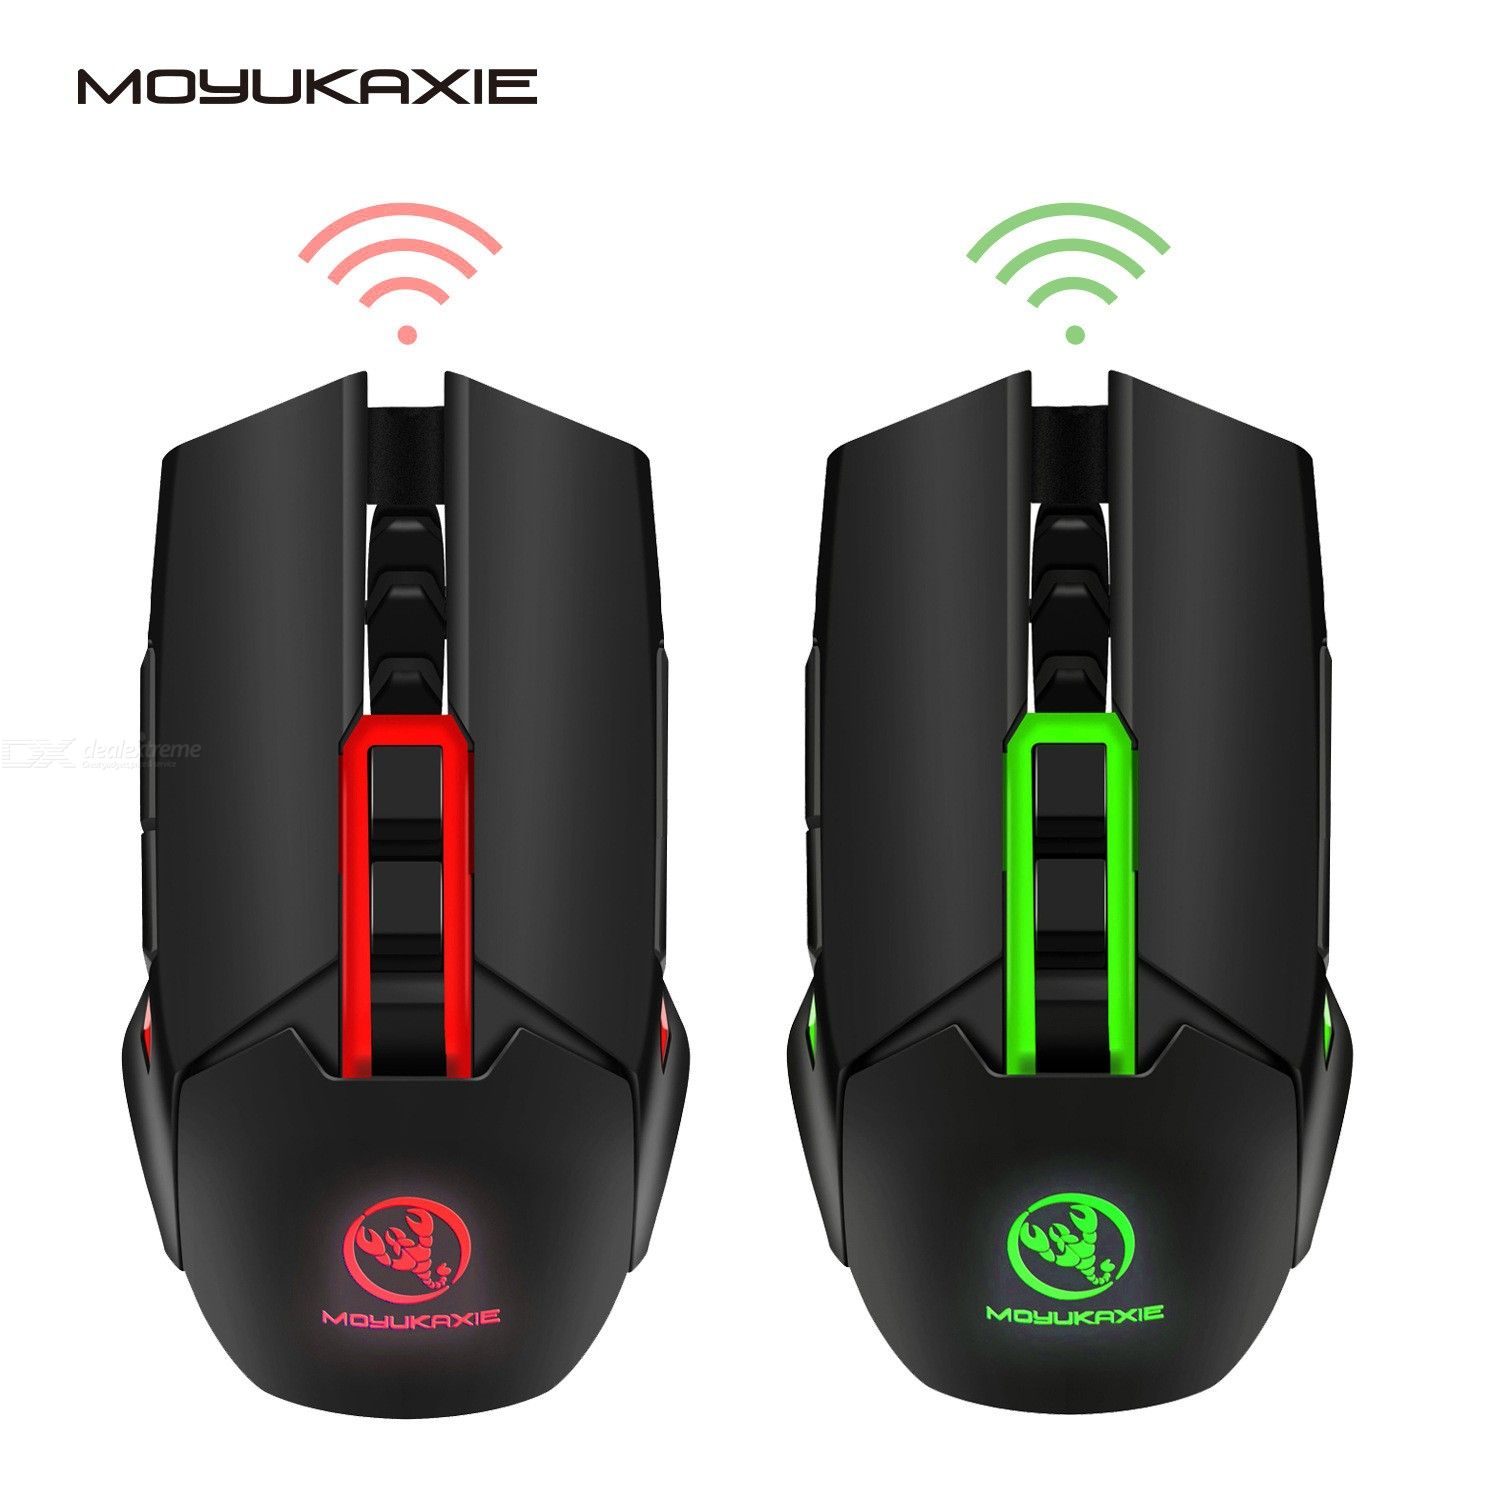 X80 2.4GHz wireless mouse computer USB rechargeable gaming mouse 5 adjustable DPI gaming wireless mouse supports 4800dpi